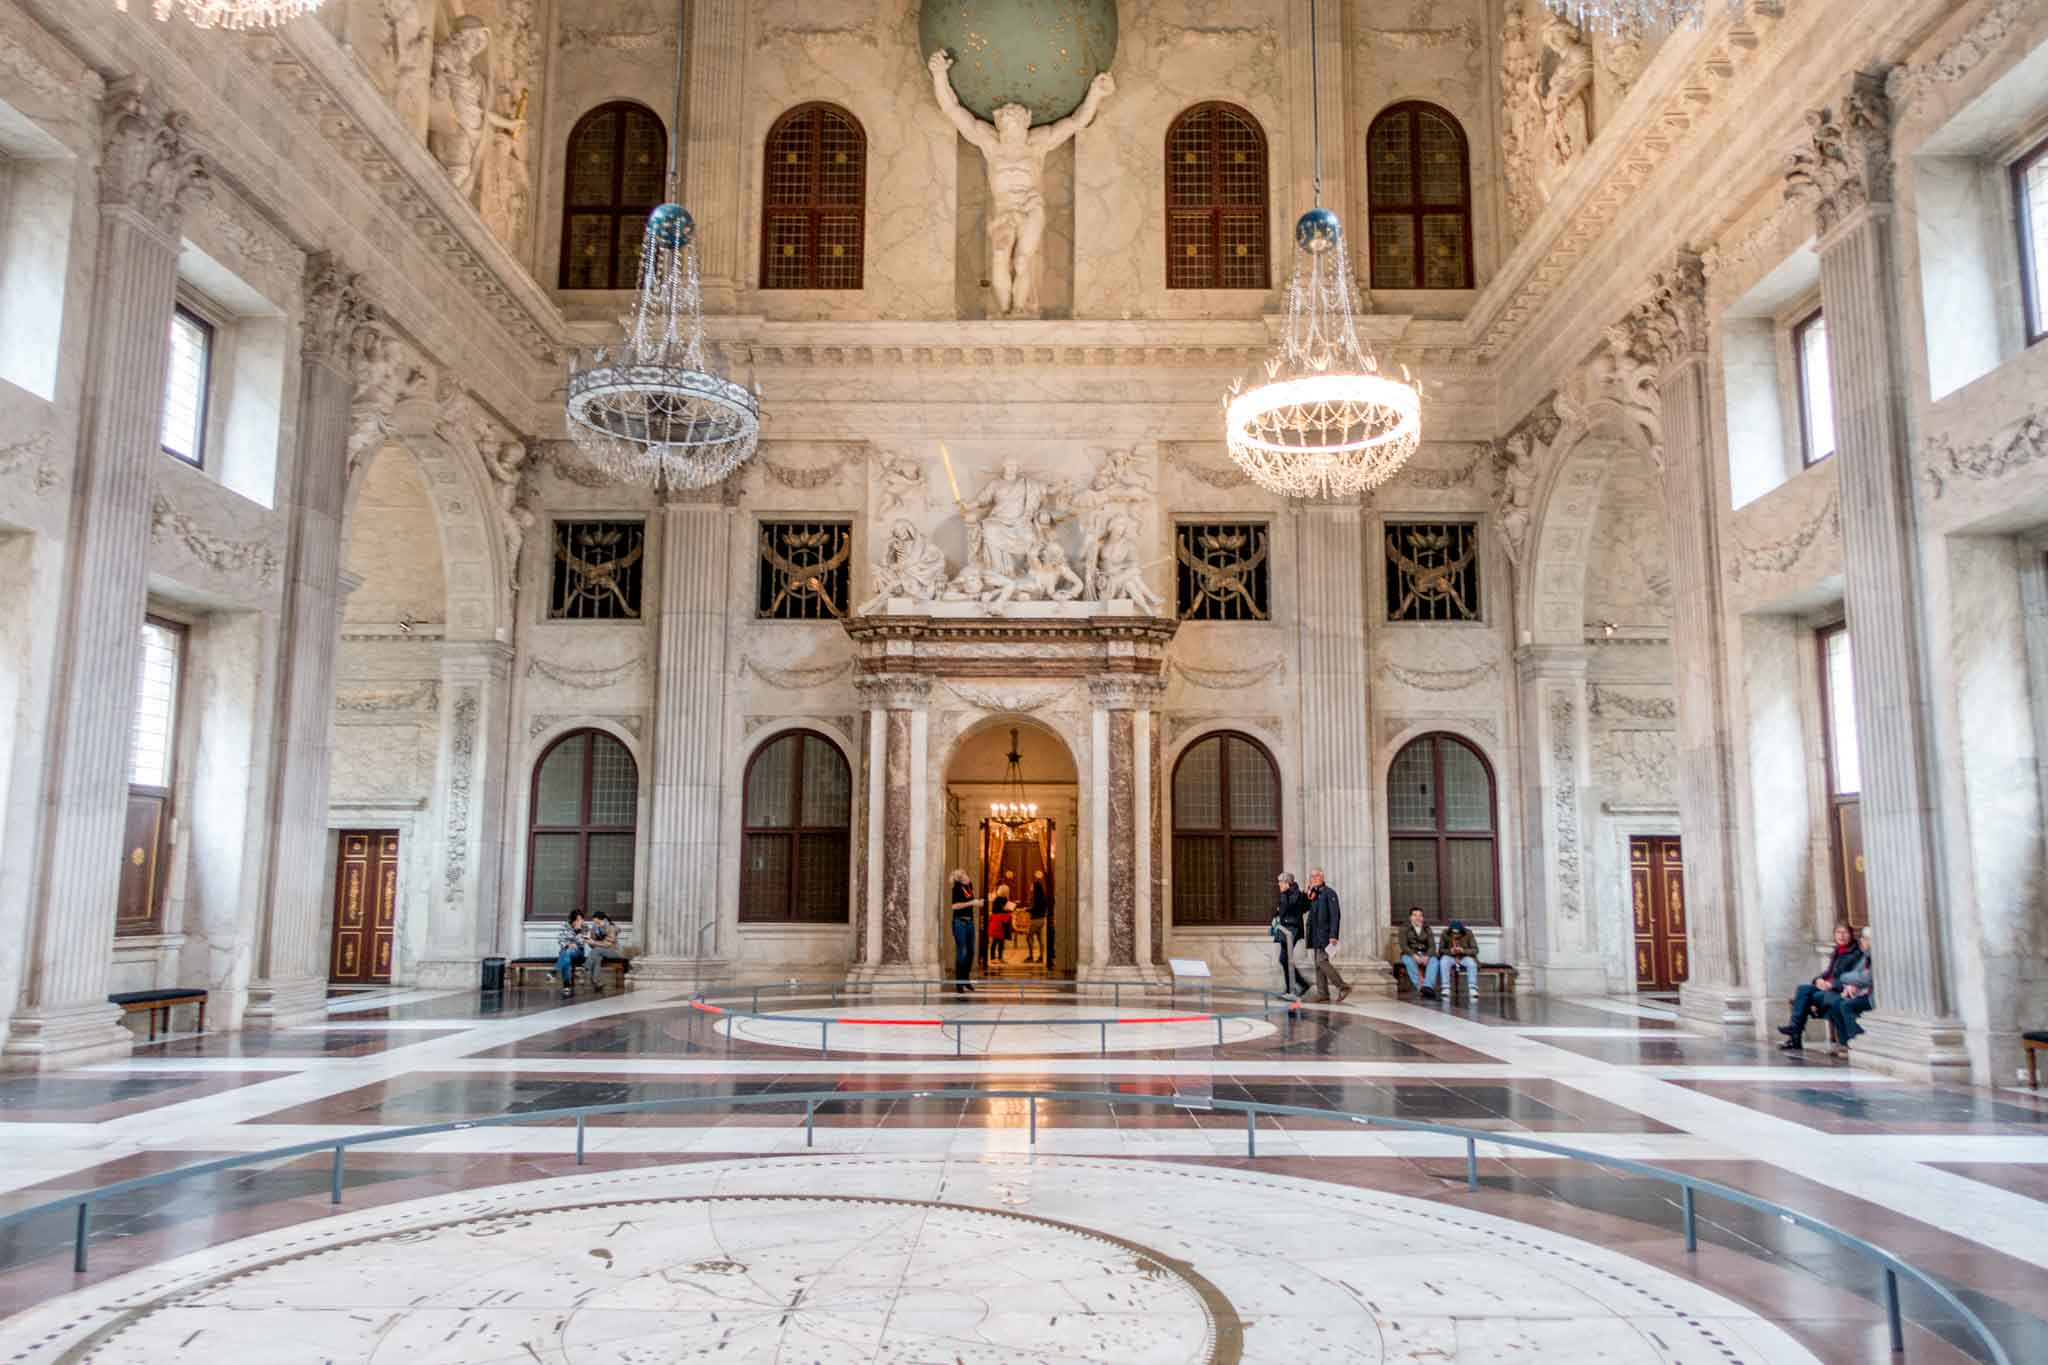 Central Hall with white marble work and sculpture of Atlas holding a globe